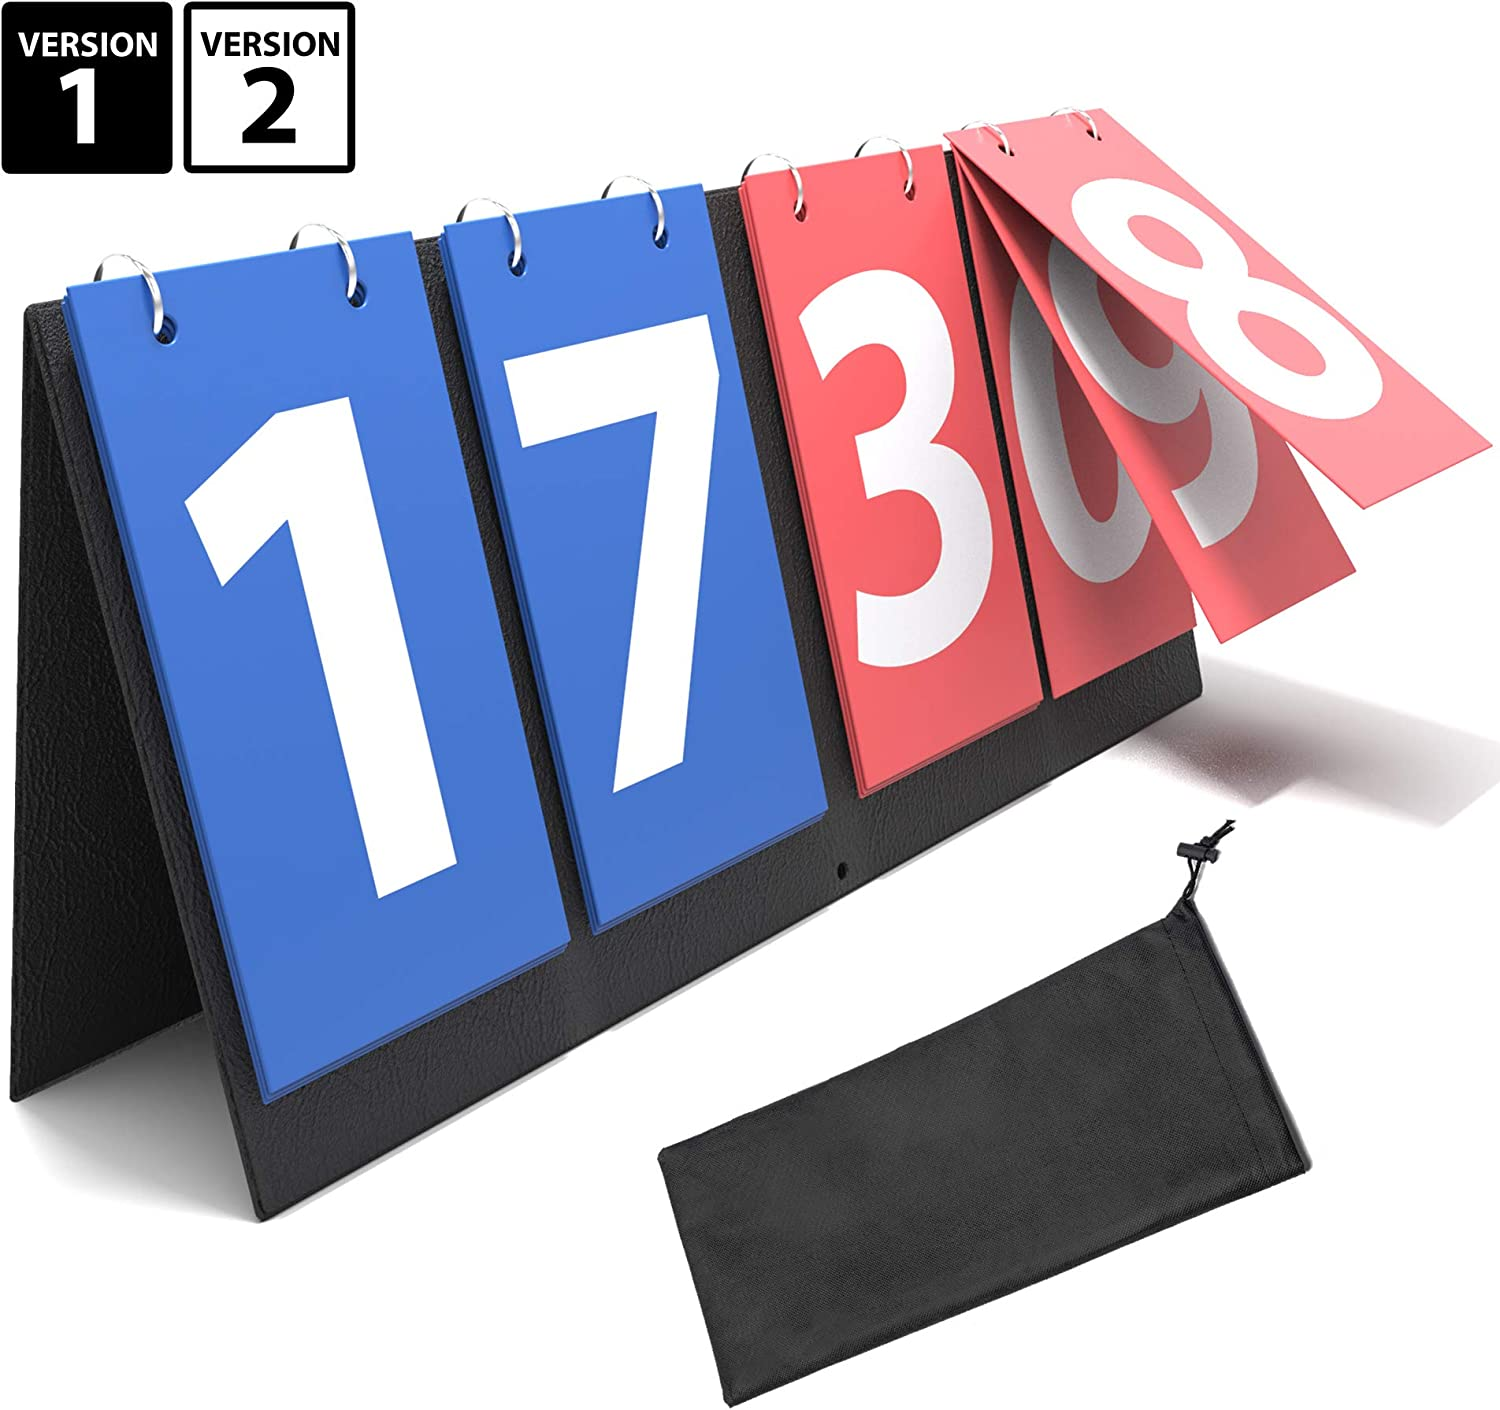 Synergee Flipper Scoreboard Portable Tabletop Flip Score Keeper. Great for Soccer, Ping Pong, Baseball, Basketball, Volleyball and Other Sports. Available in 4 & 6 Digits.